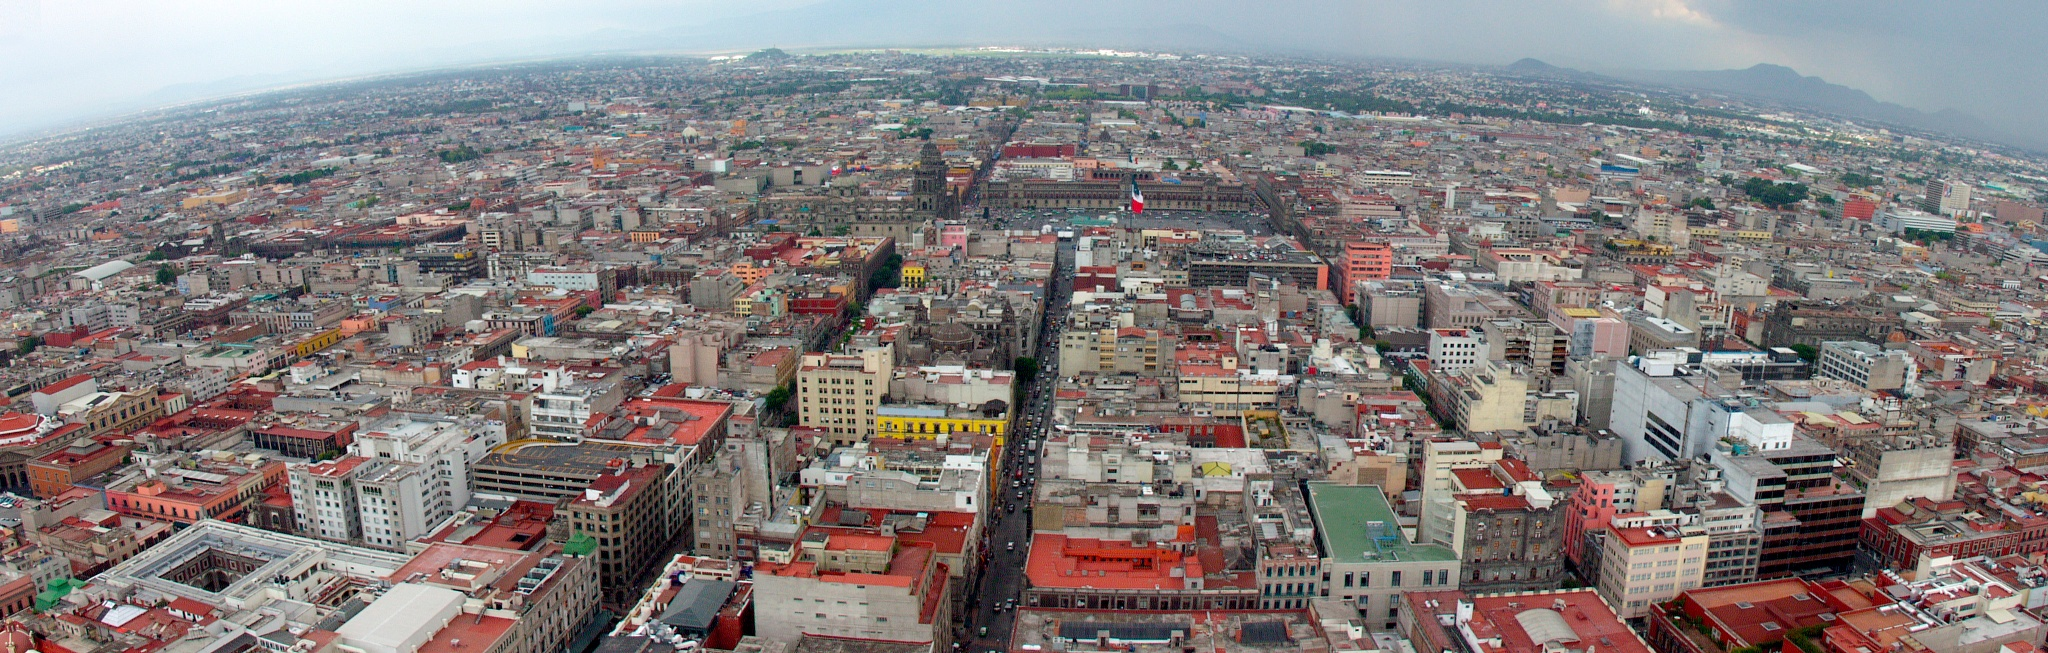 Mexico City old town by Peter Blaha